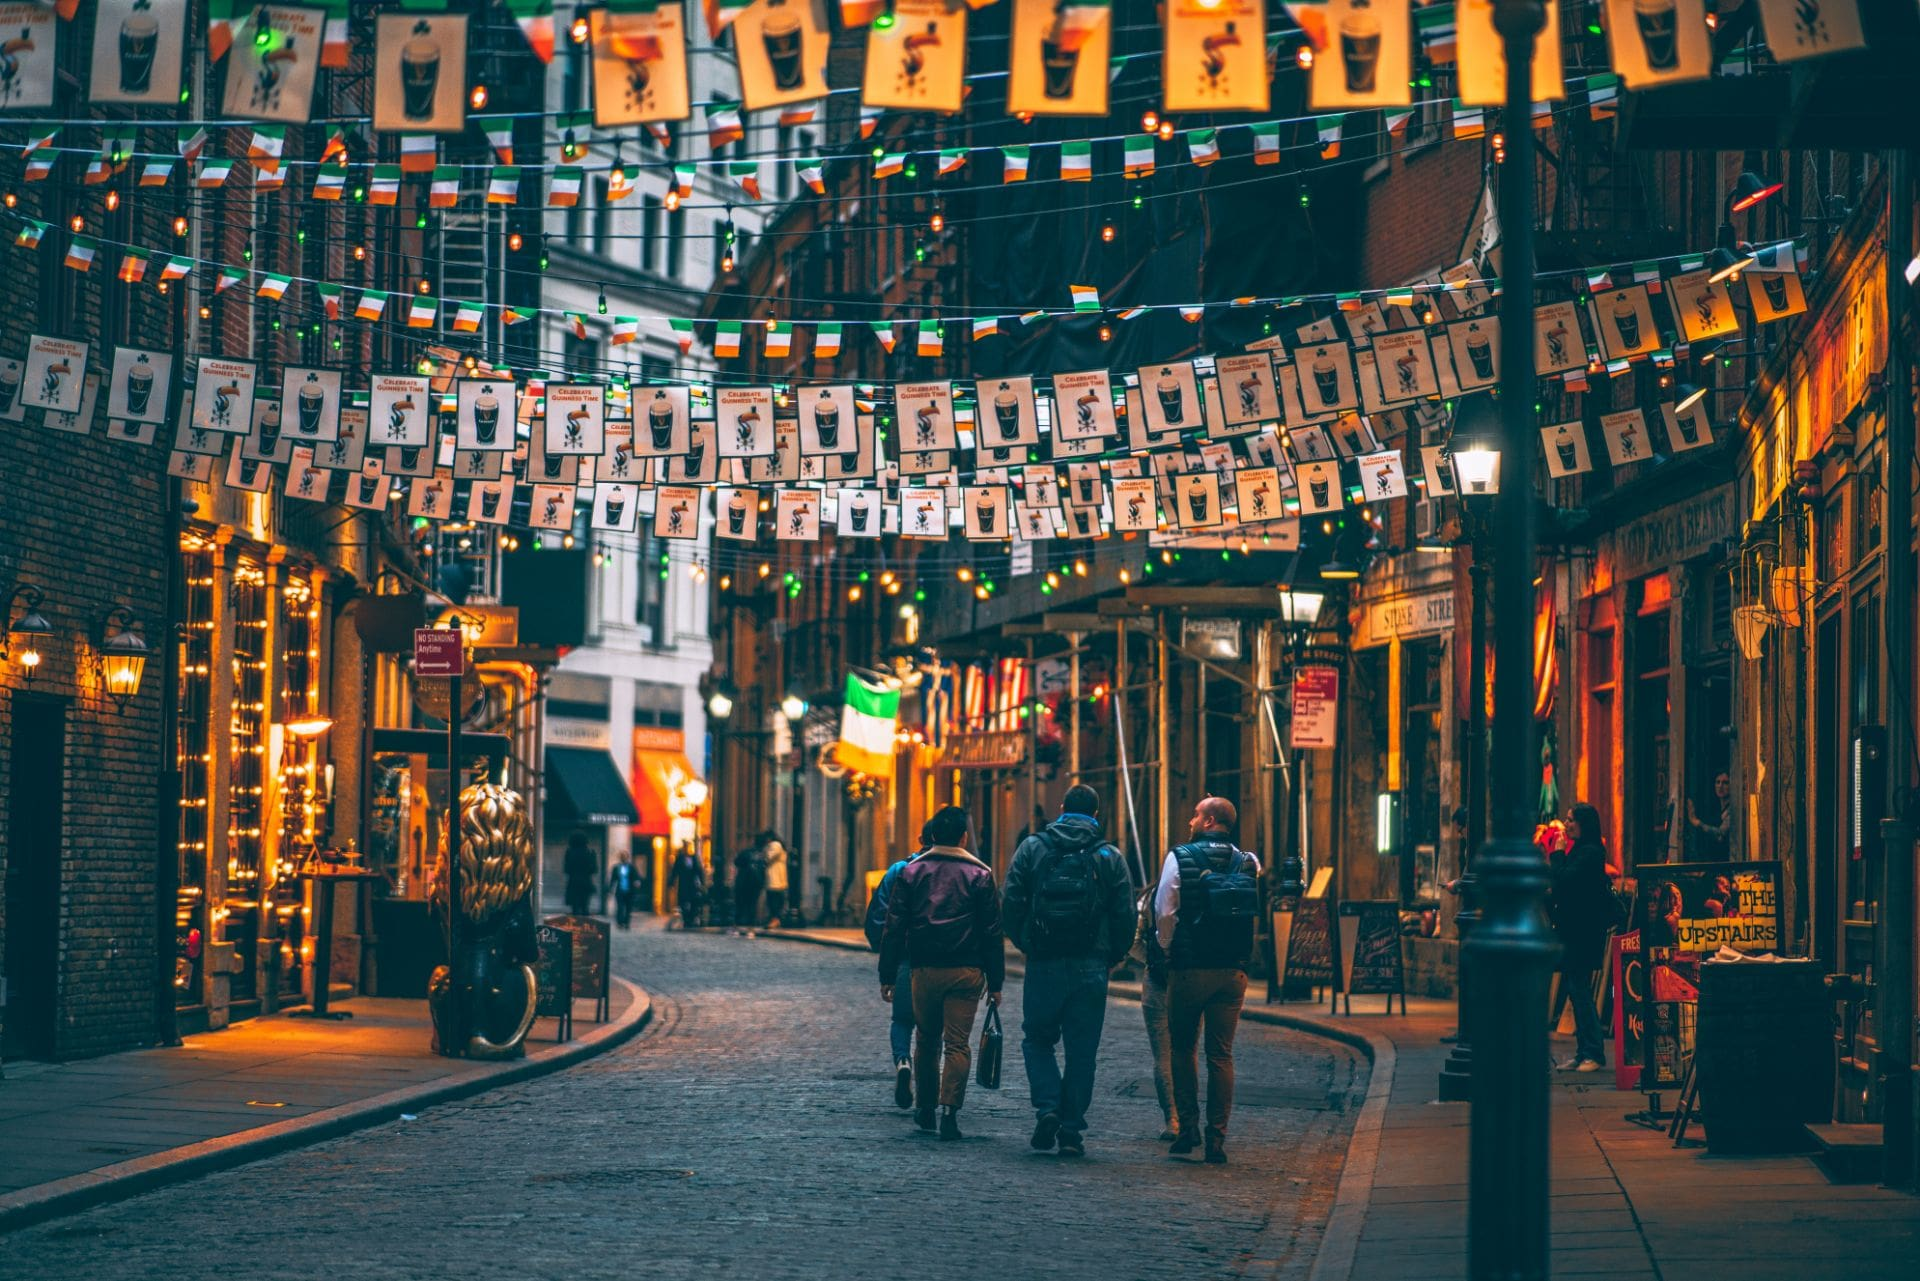 irish-street-with-pubs-at-night-lined-with-guiness-and-irish-flag-bunting-stone-street-in-new-york-in-4-days